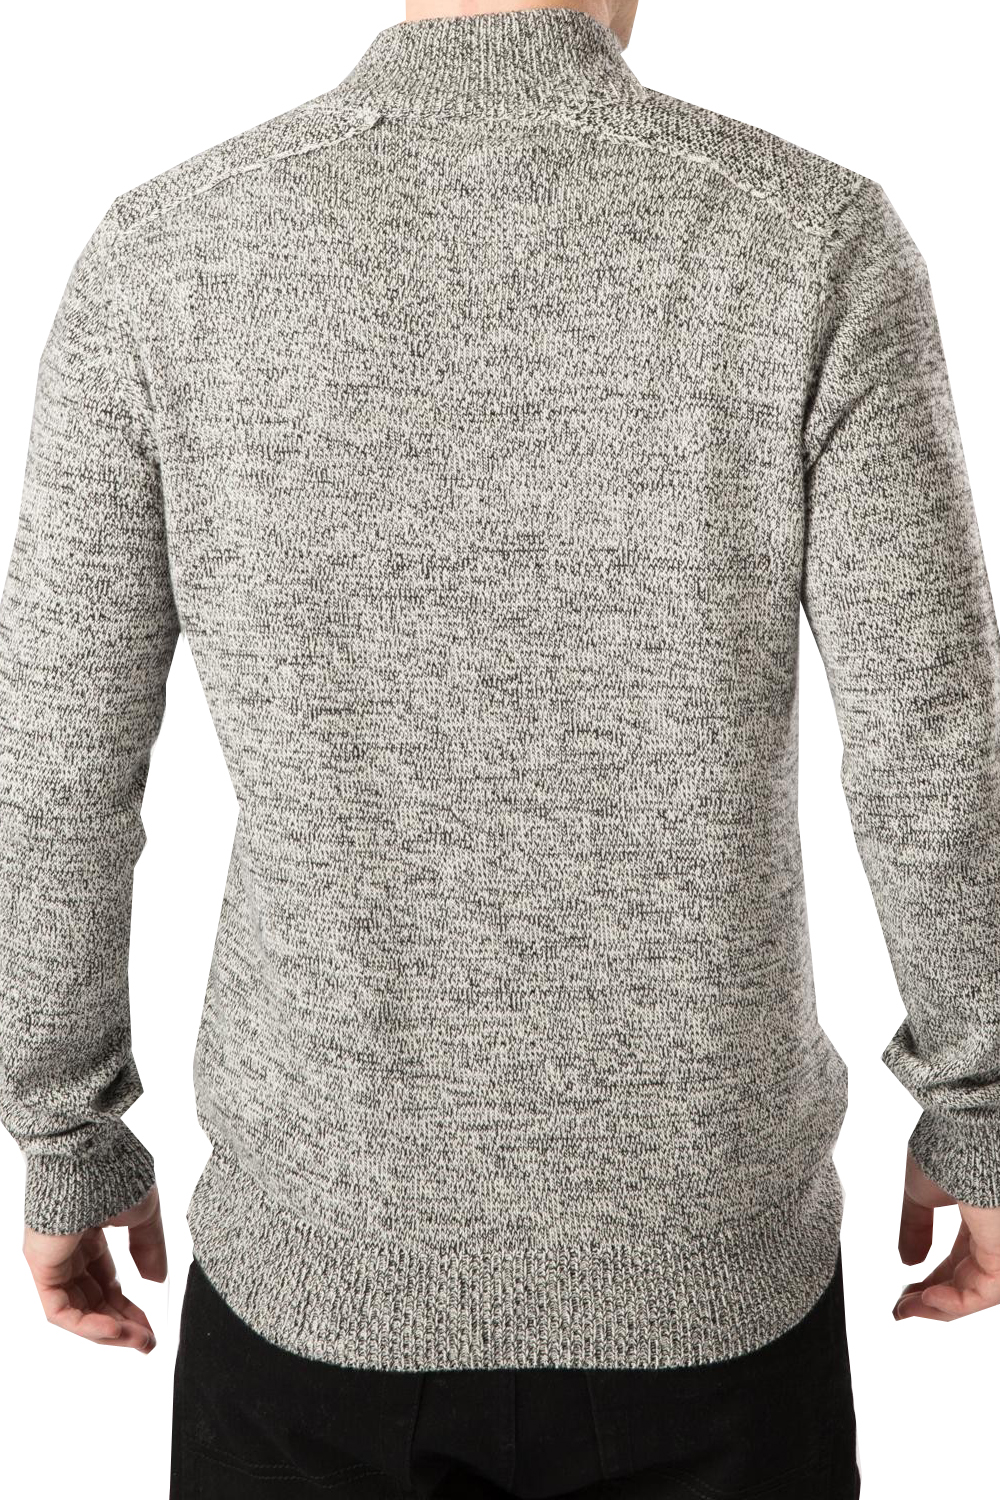 Threadbare Mens Jumper Moscow New Zip Up Neck Pullover Long Sleeved Sweater Top